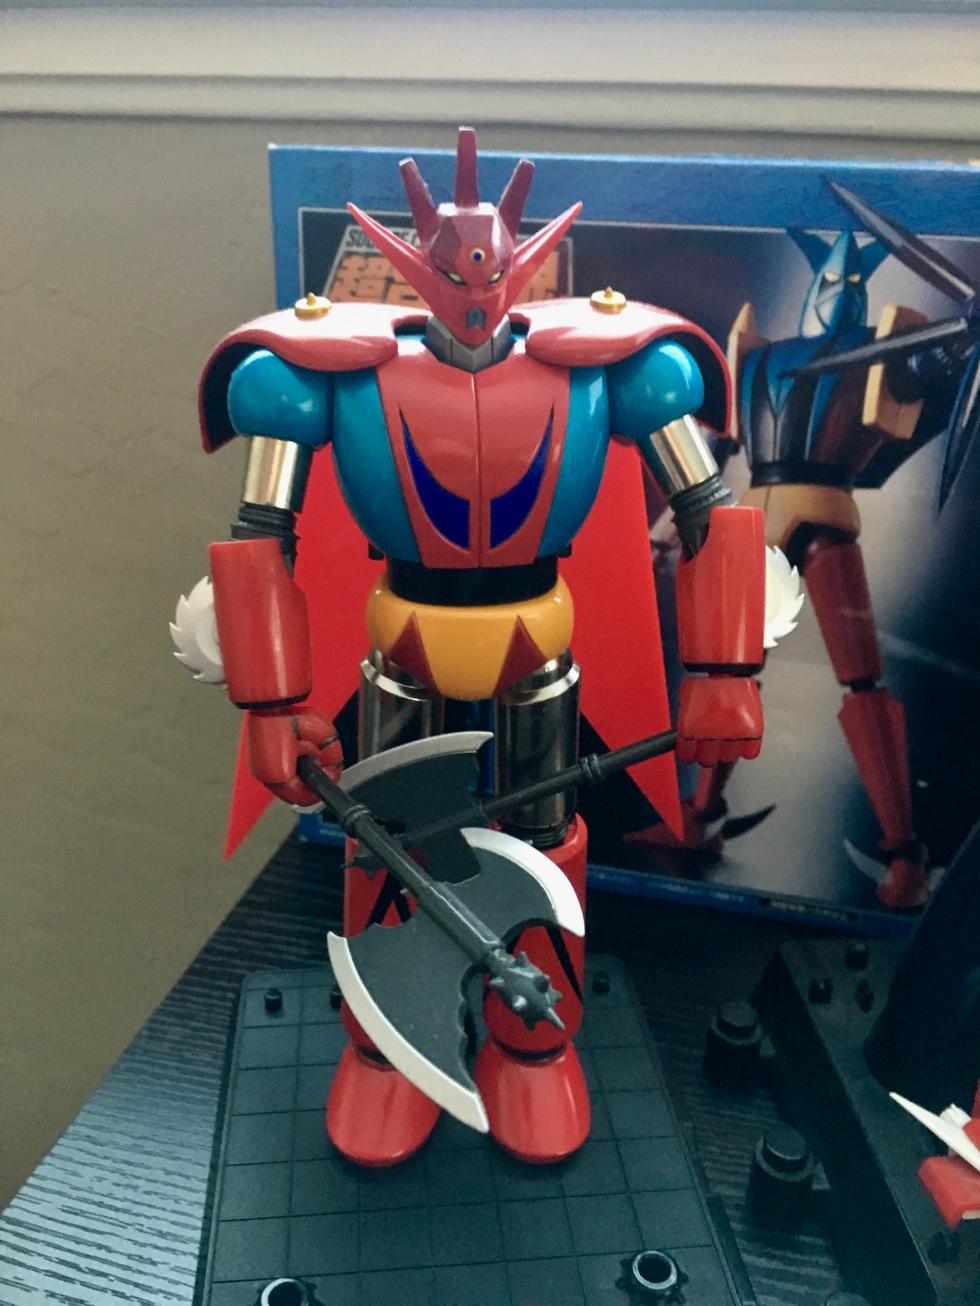 Red Dragon - The lead configuration of Getter Robo G